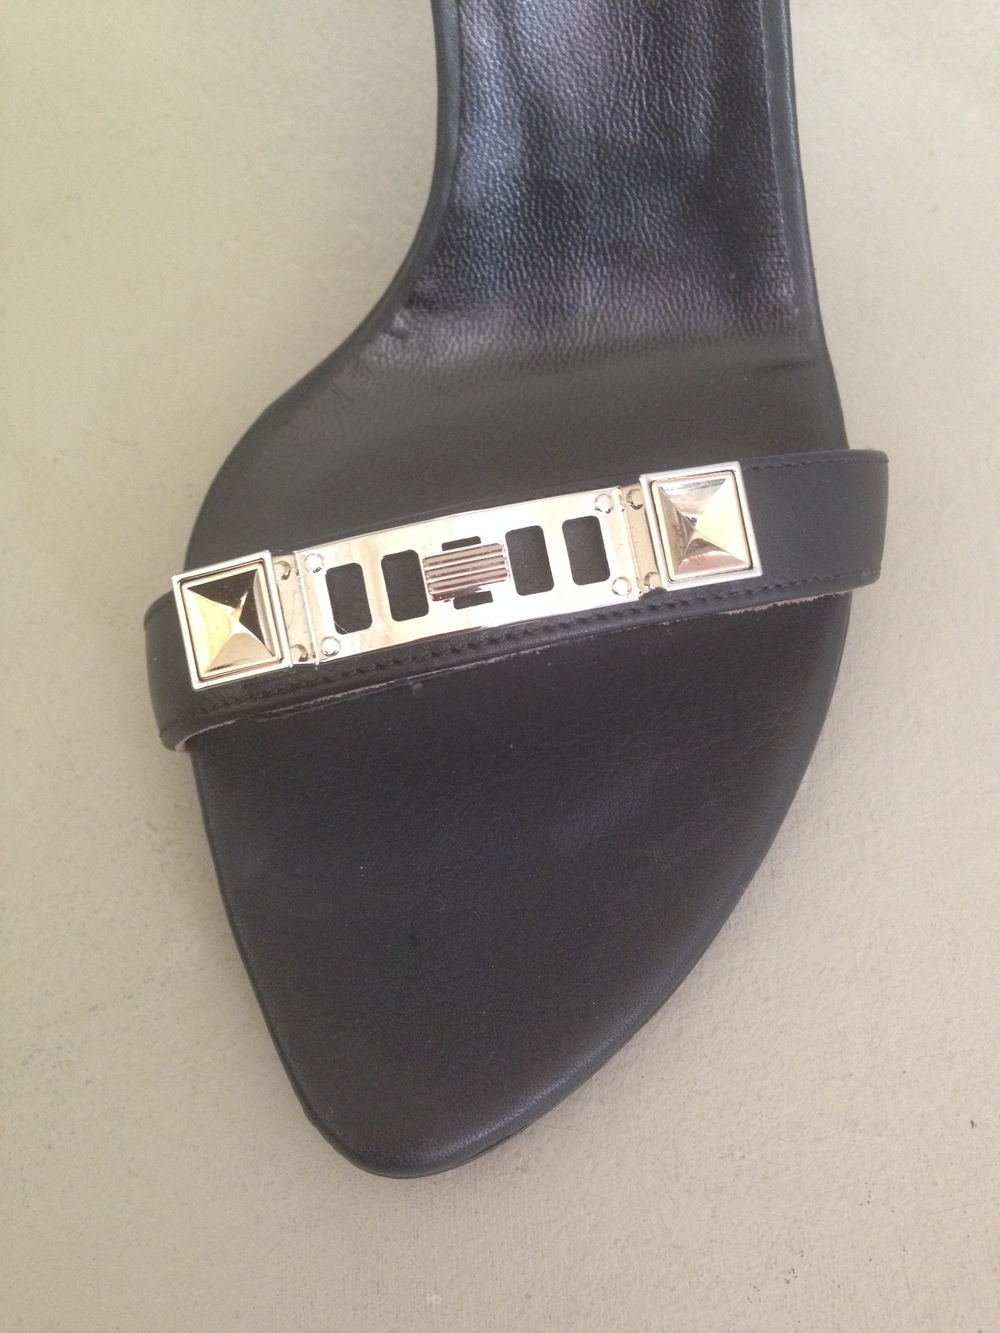 Proenza Schouler PS1 Leather Ankle-Strap Sandal, $ 595.  On sale for $417.  I love the toe shape and the hardware!